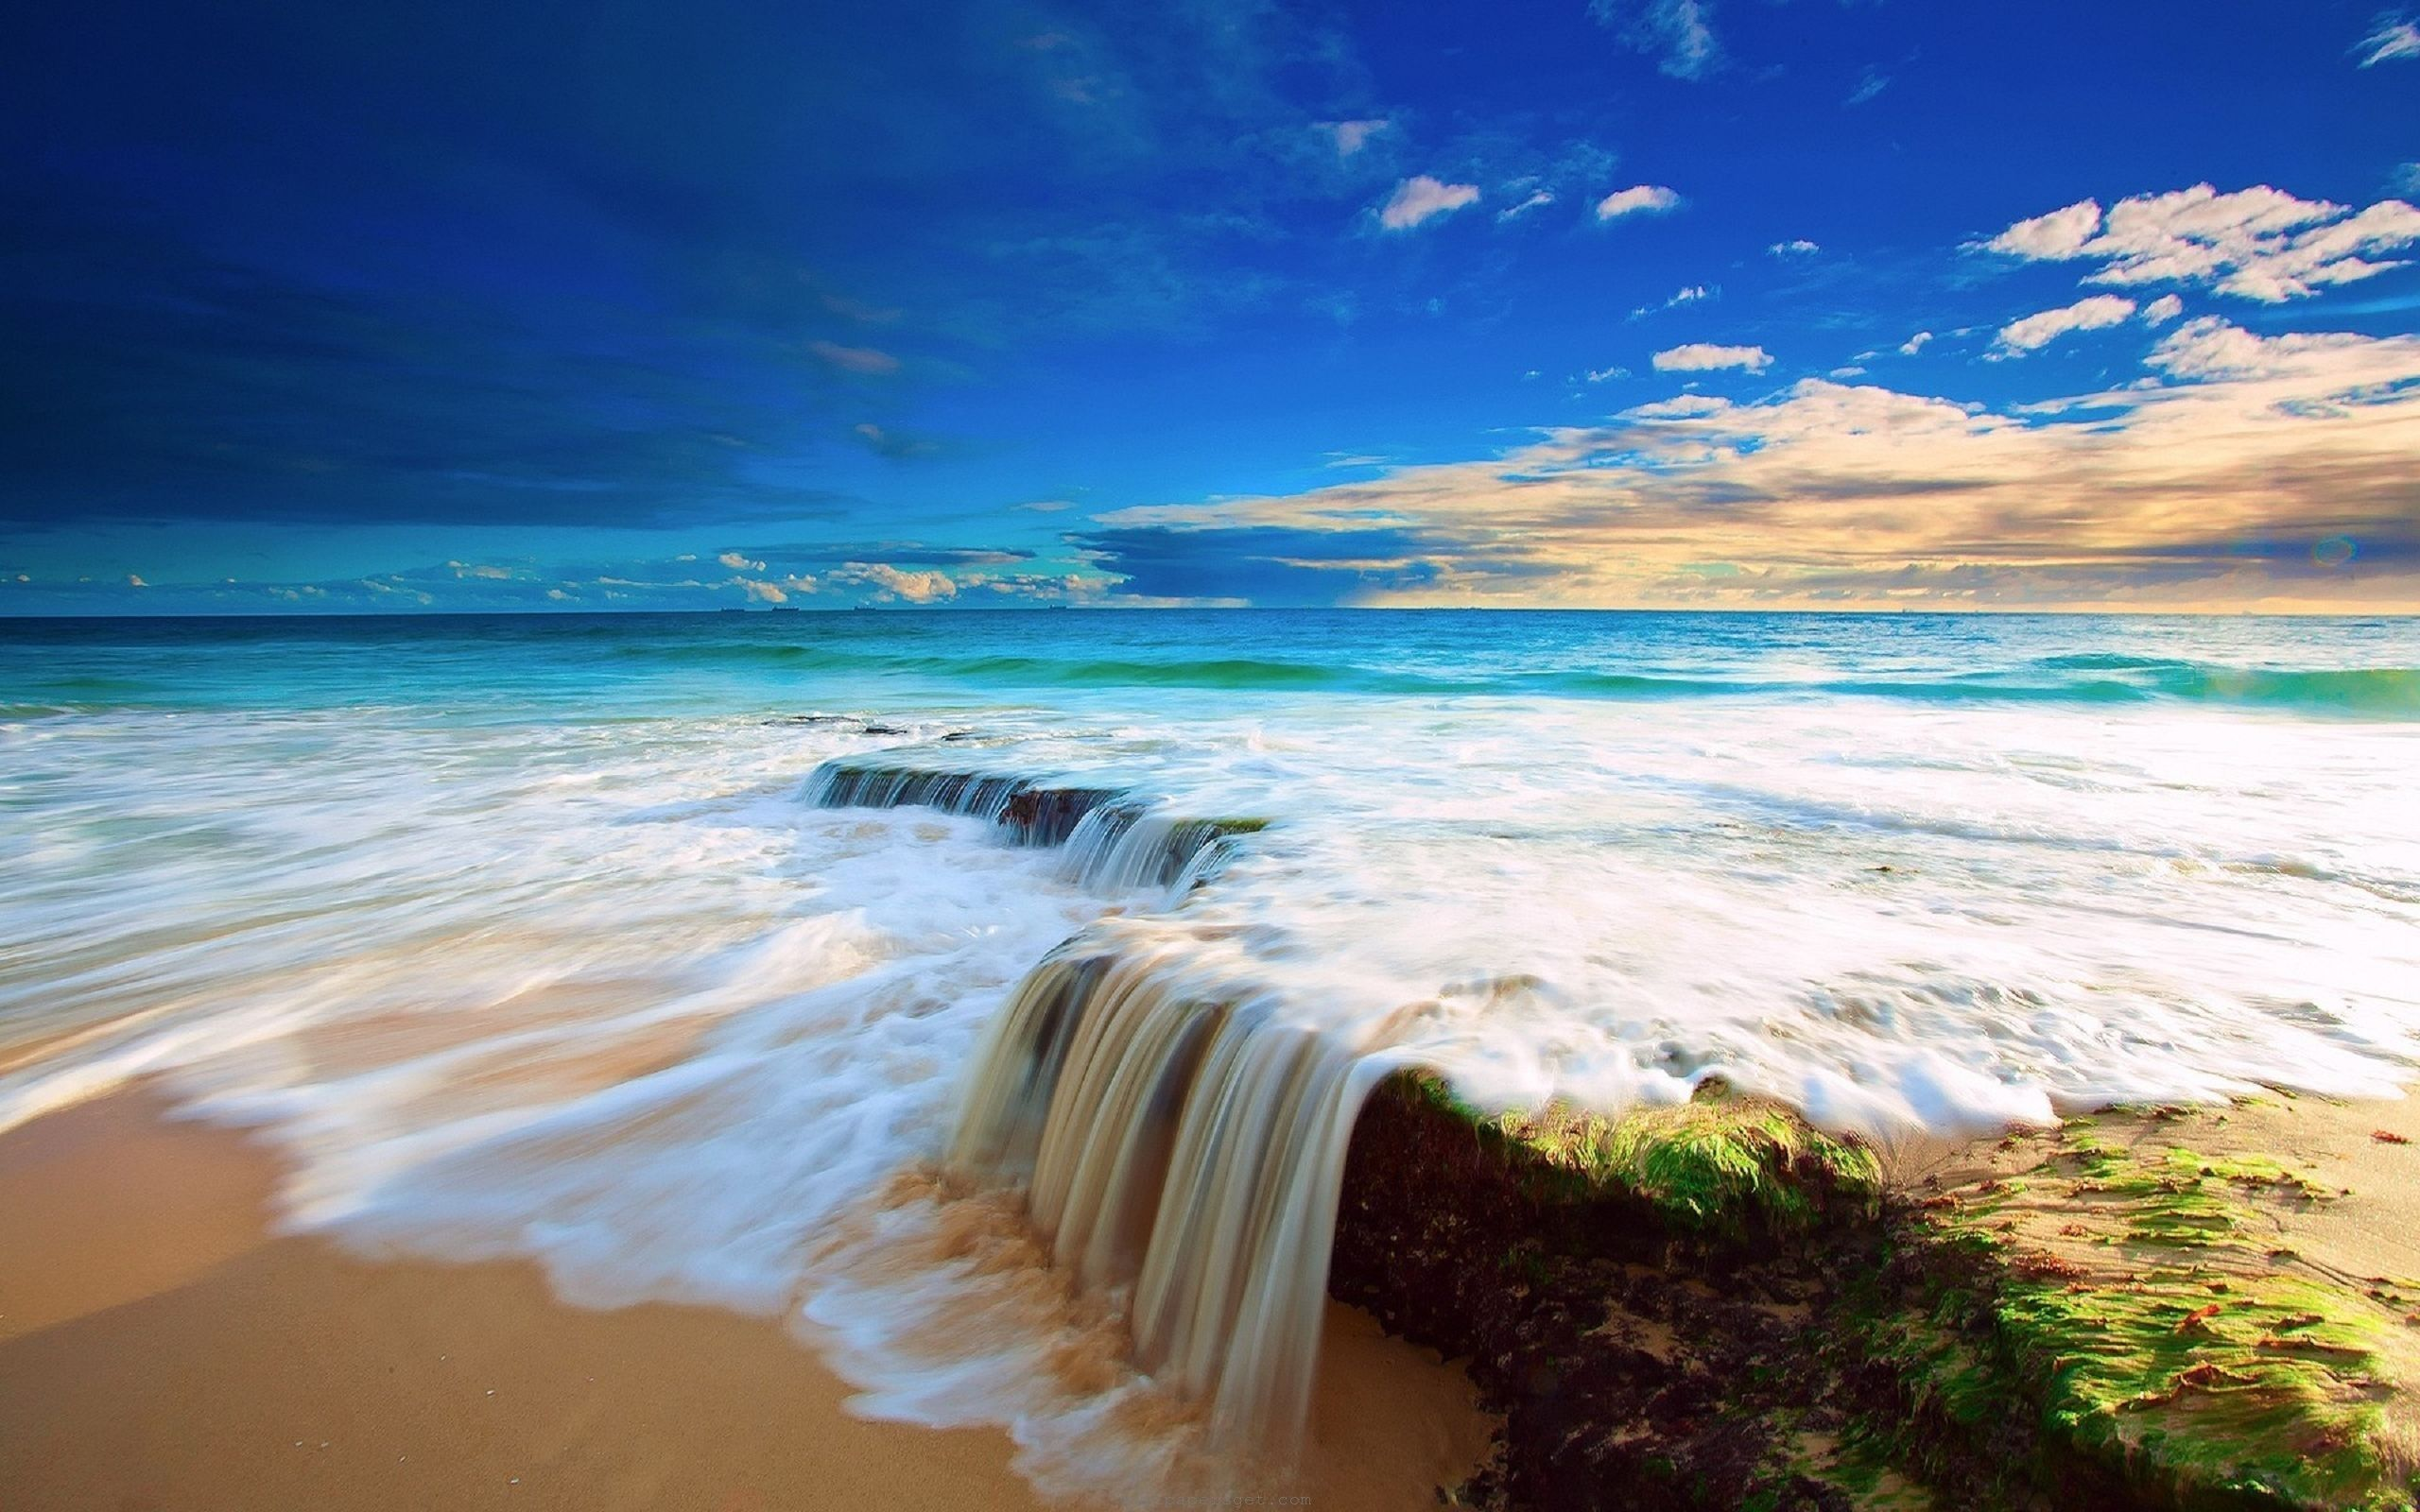 beautiful beach ocean water hd wallpaper download awesome, nice